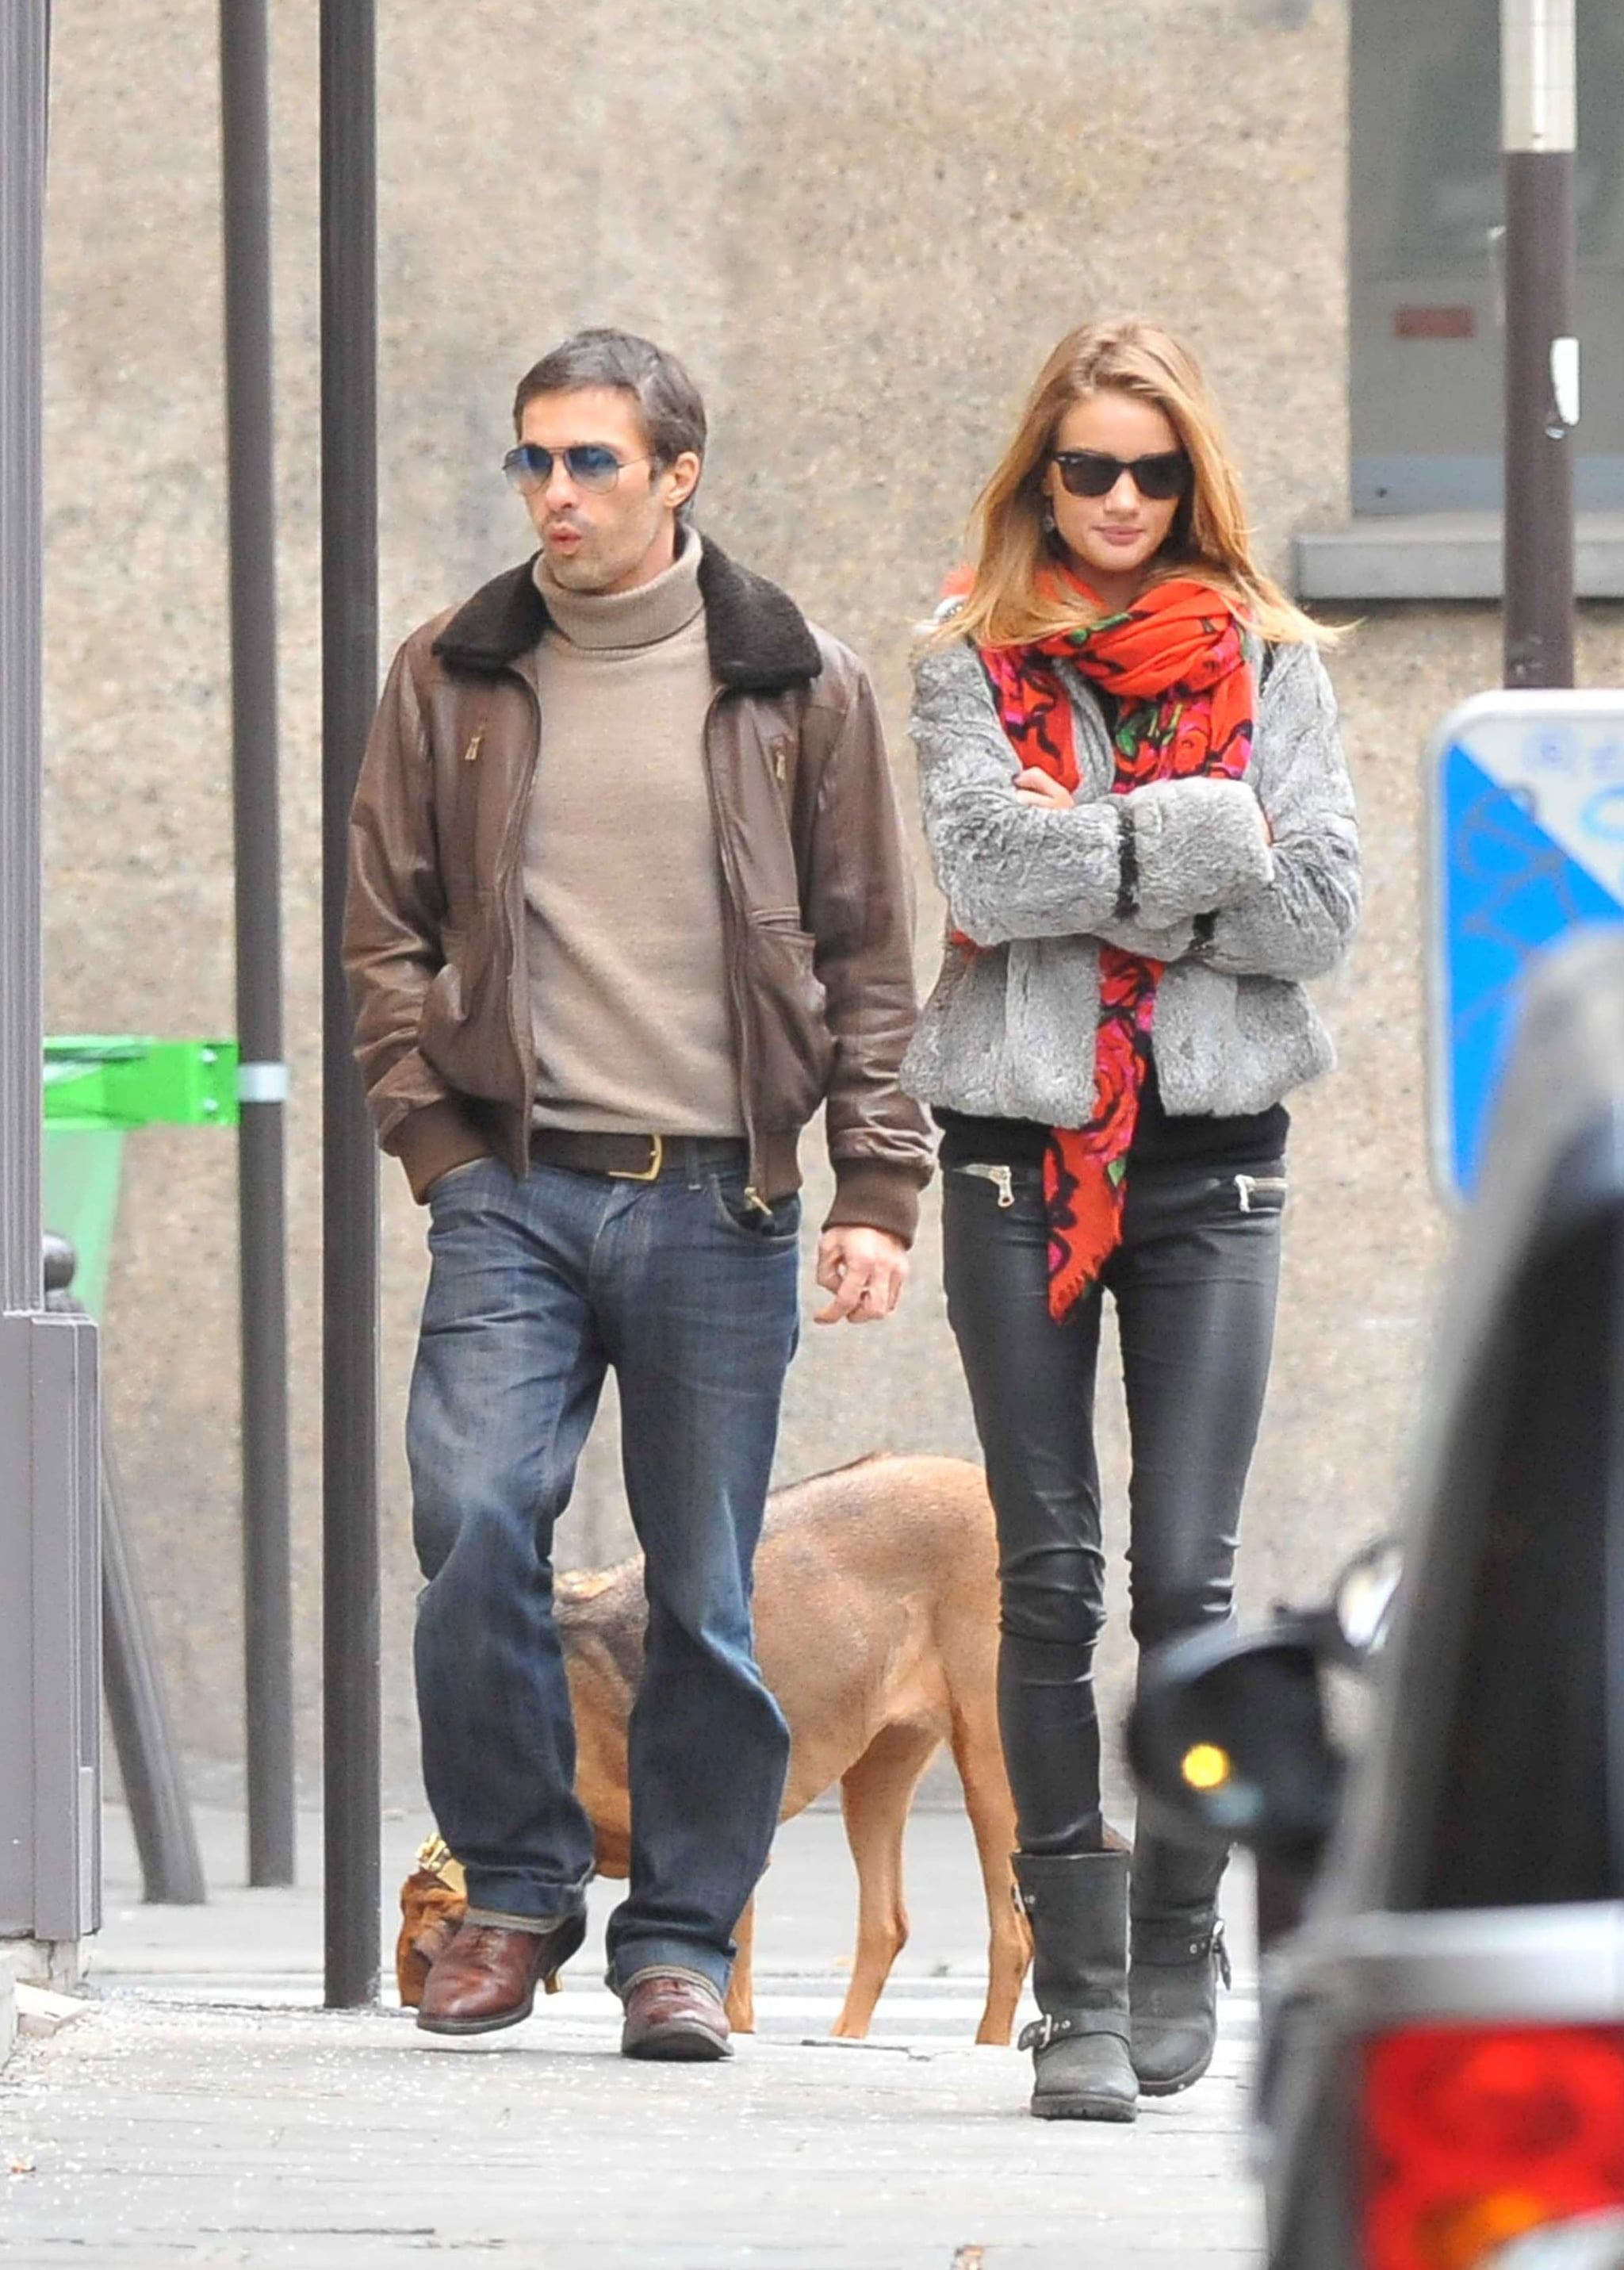 838862b7d1b Photos of Olivier Martinez and Rosie Huntington-Whiteley in Paris ...